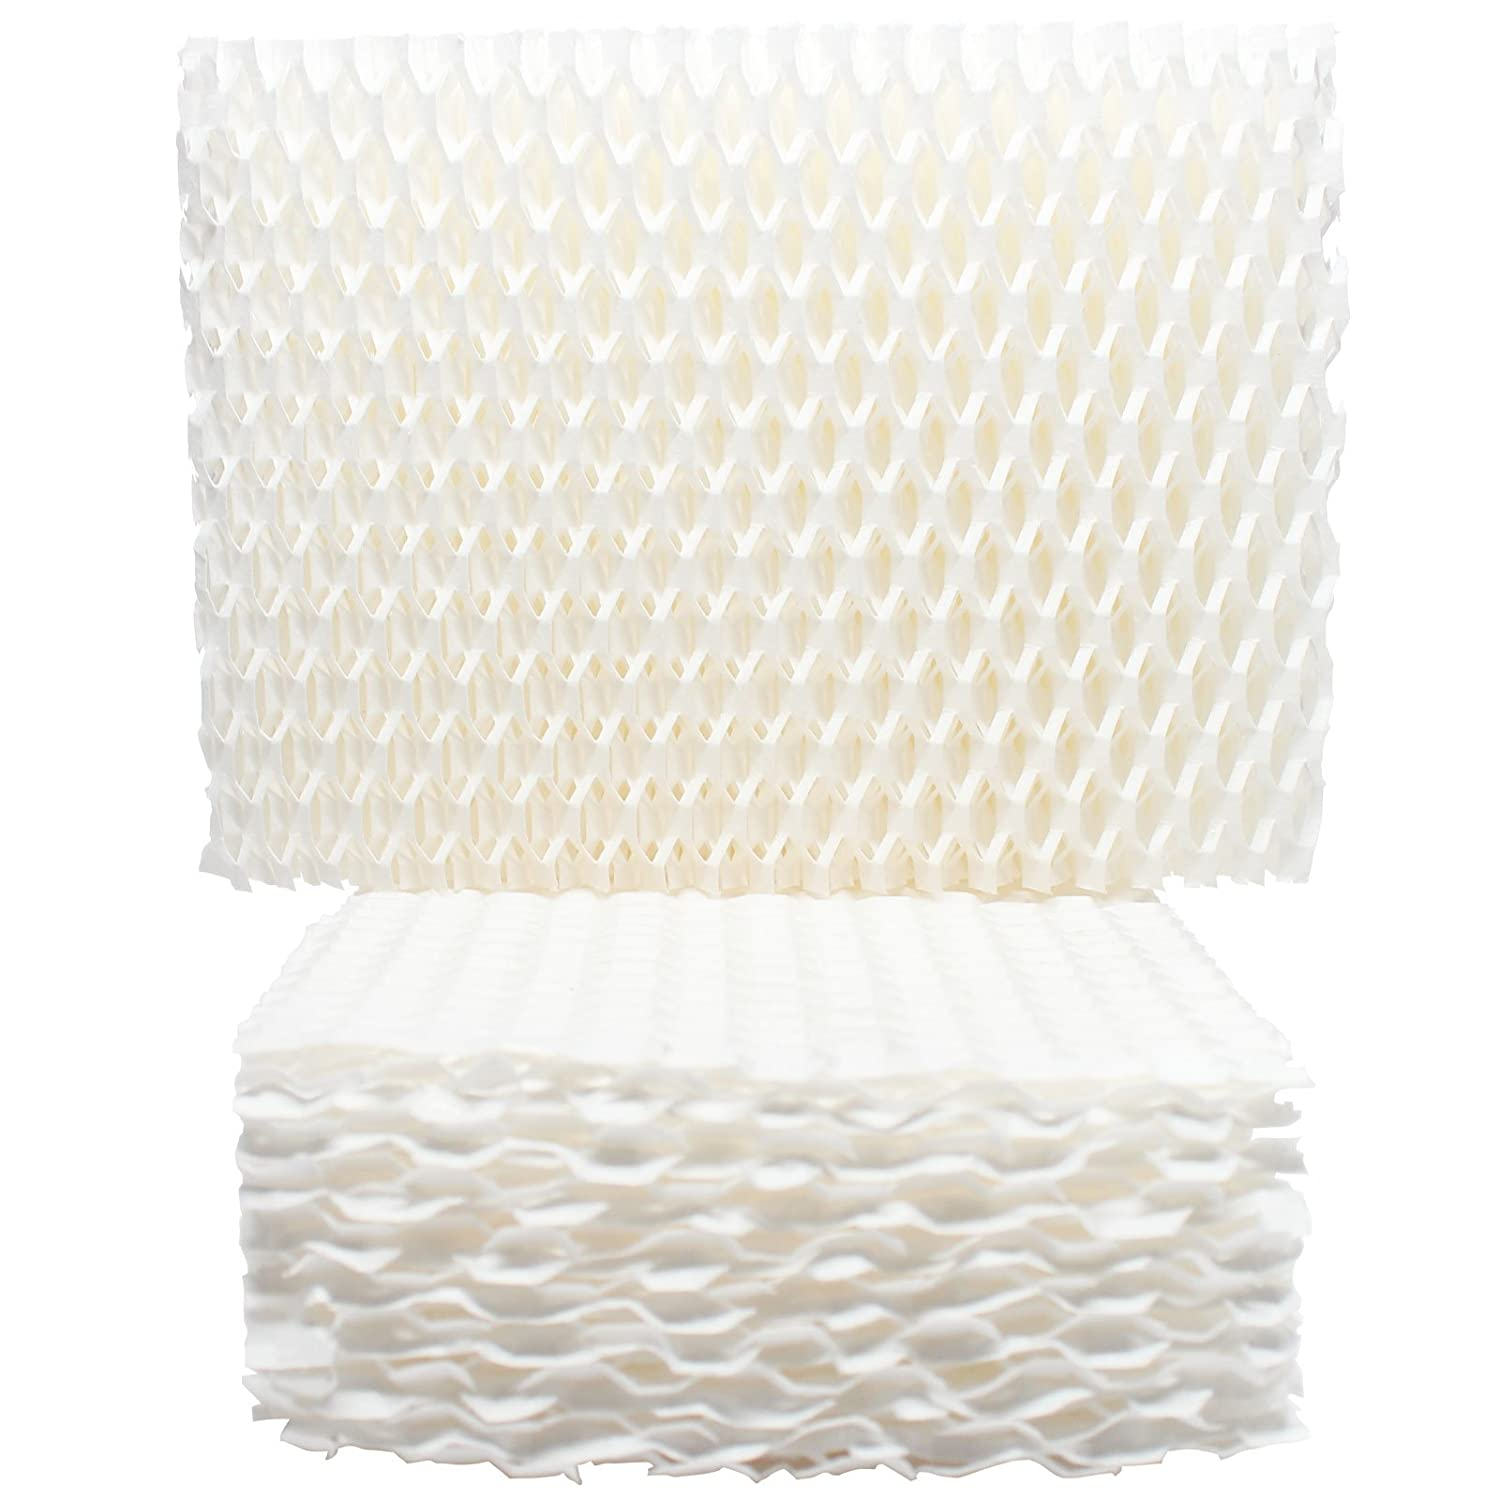 2-Pack Replacement 2H00 Humidifier Filter for 1.5 Gallon Graco TrueAir - Compatible with Graco Cool Mist Humidifier, Graco 2H00, Graco 2H01, TrueAir 05510, Graco 2H001